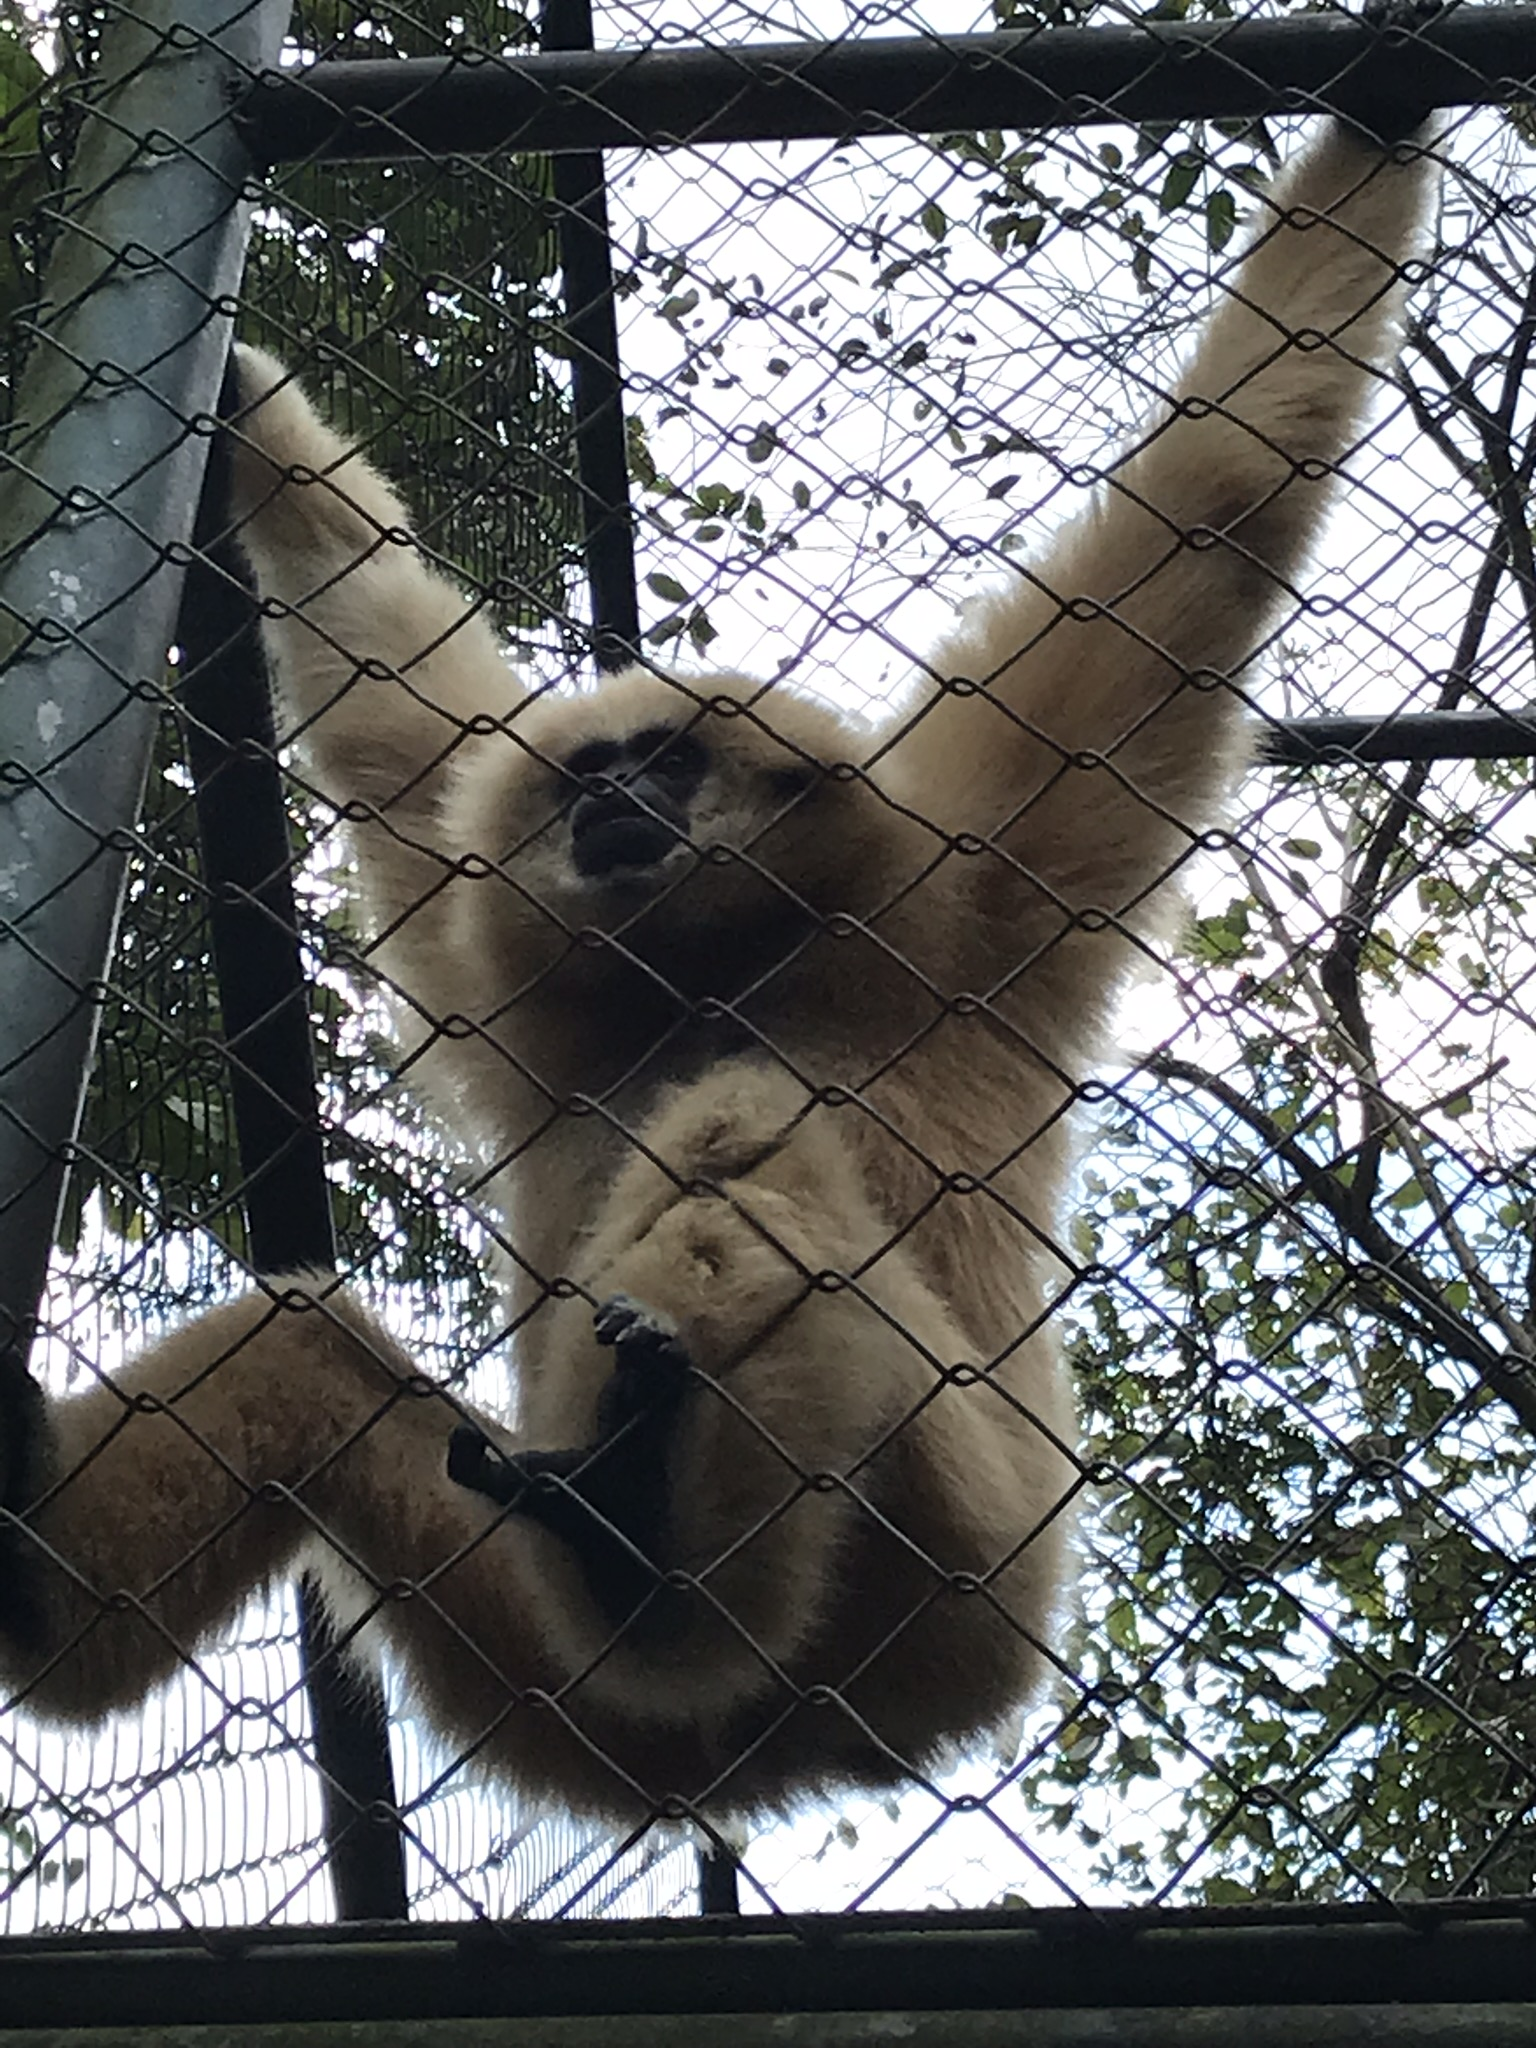 One of the many rescued gibbons at WFFT